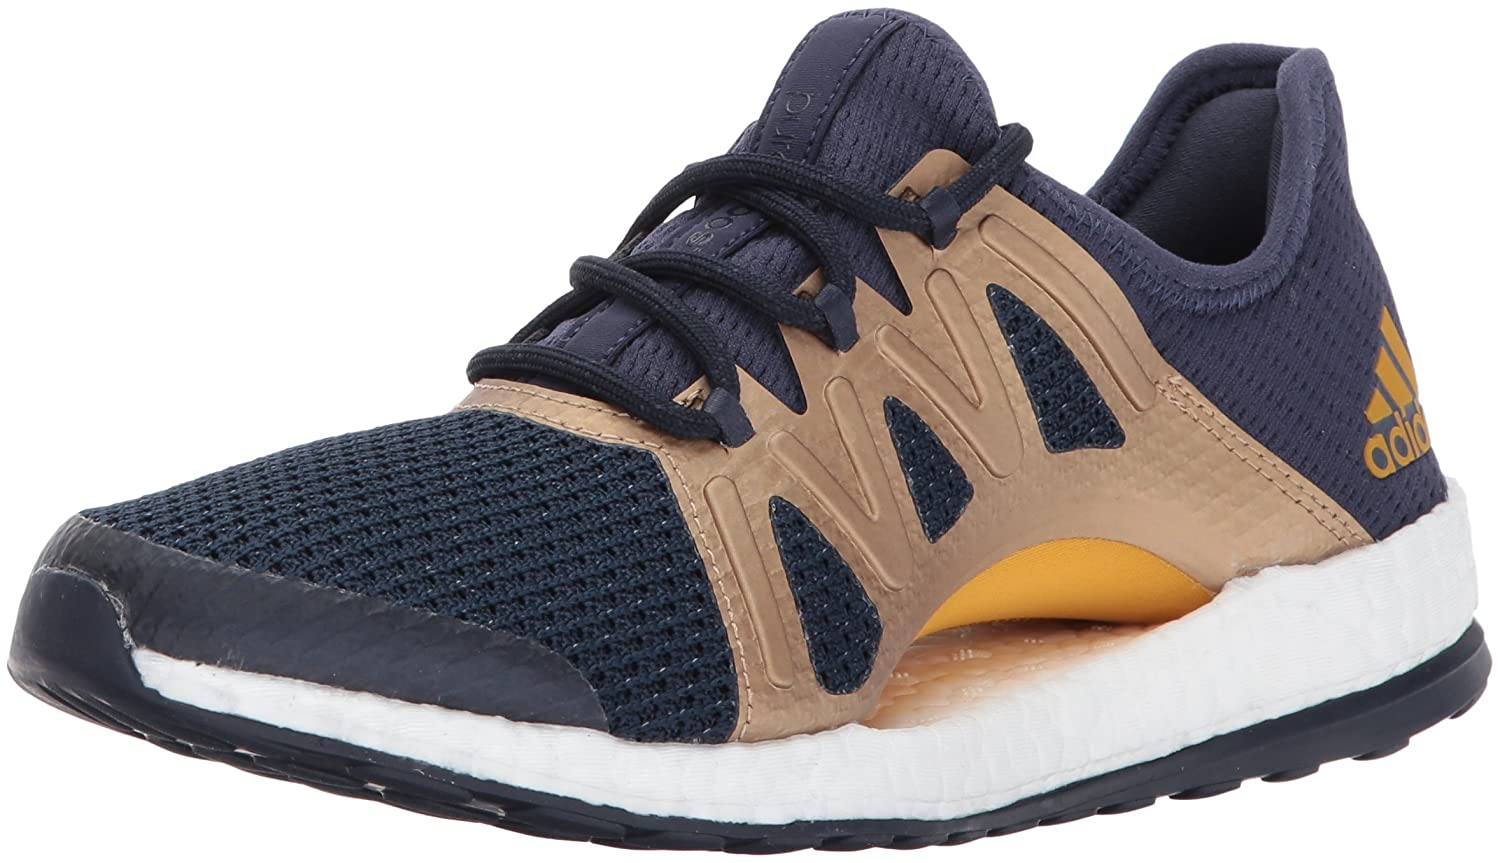 adidas Women's Pureboost Xpose B01N45ASSA 11 B(M) US|Trace Blue/Tactile Gold /Legend Ink